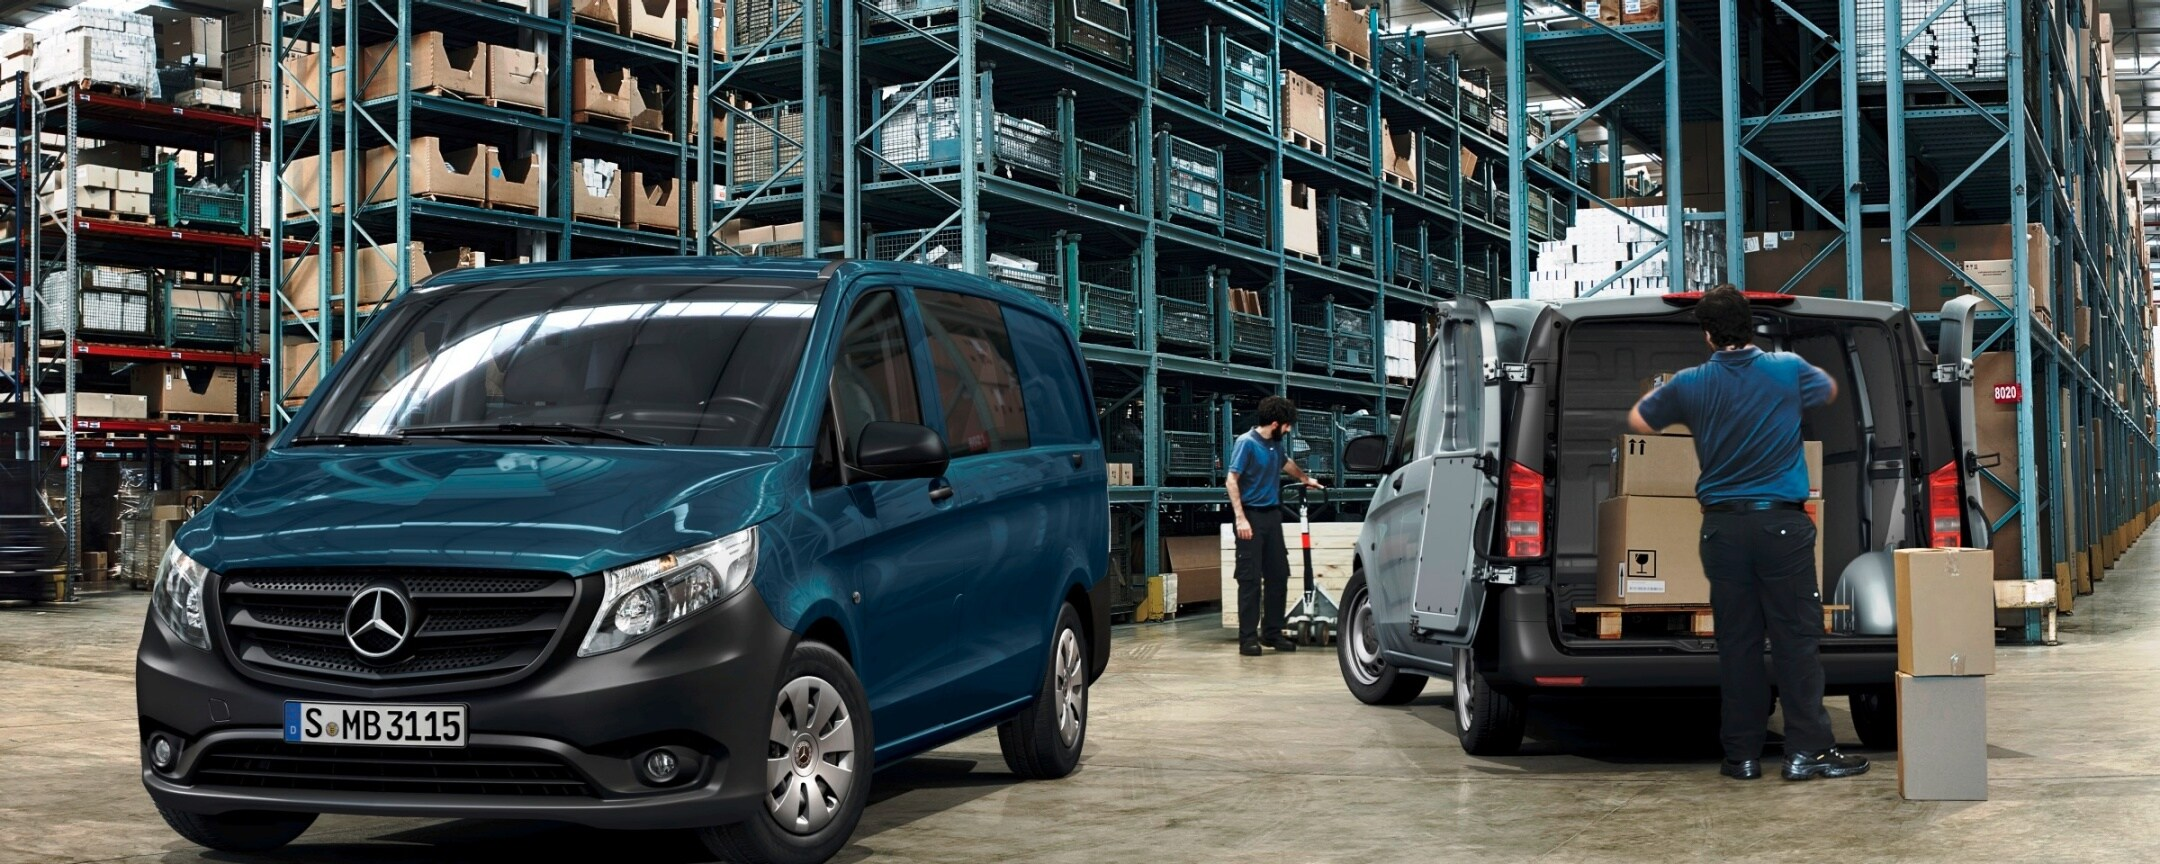 Drive forth this Ramadan with the Vito Tourer